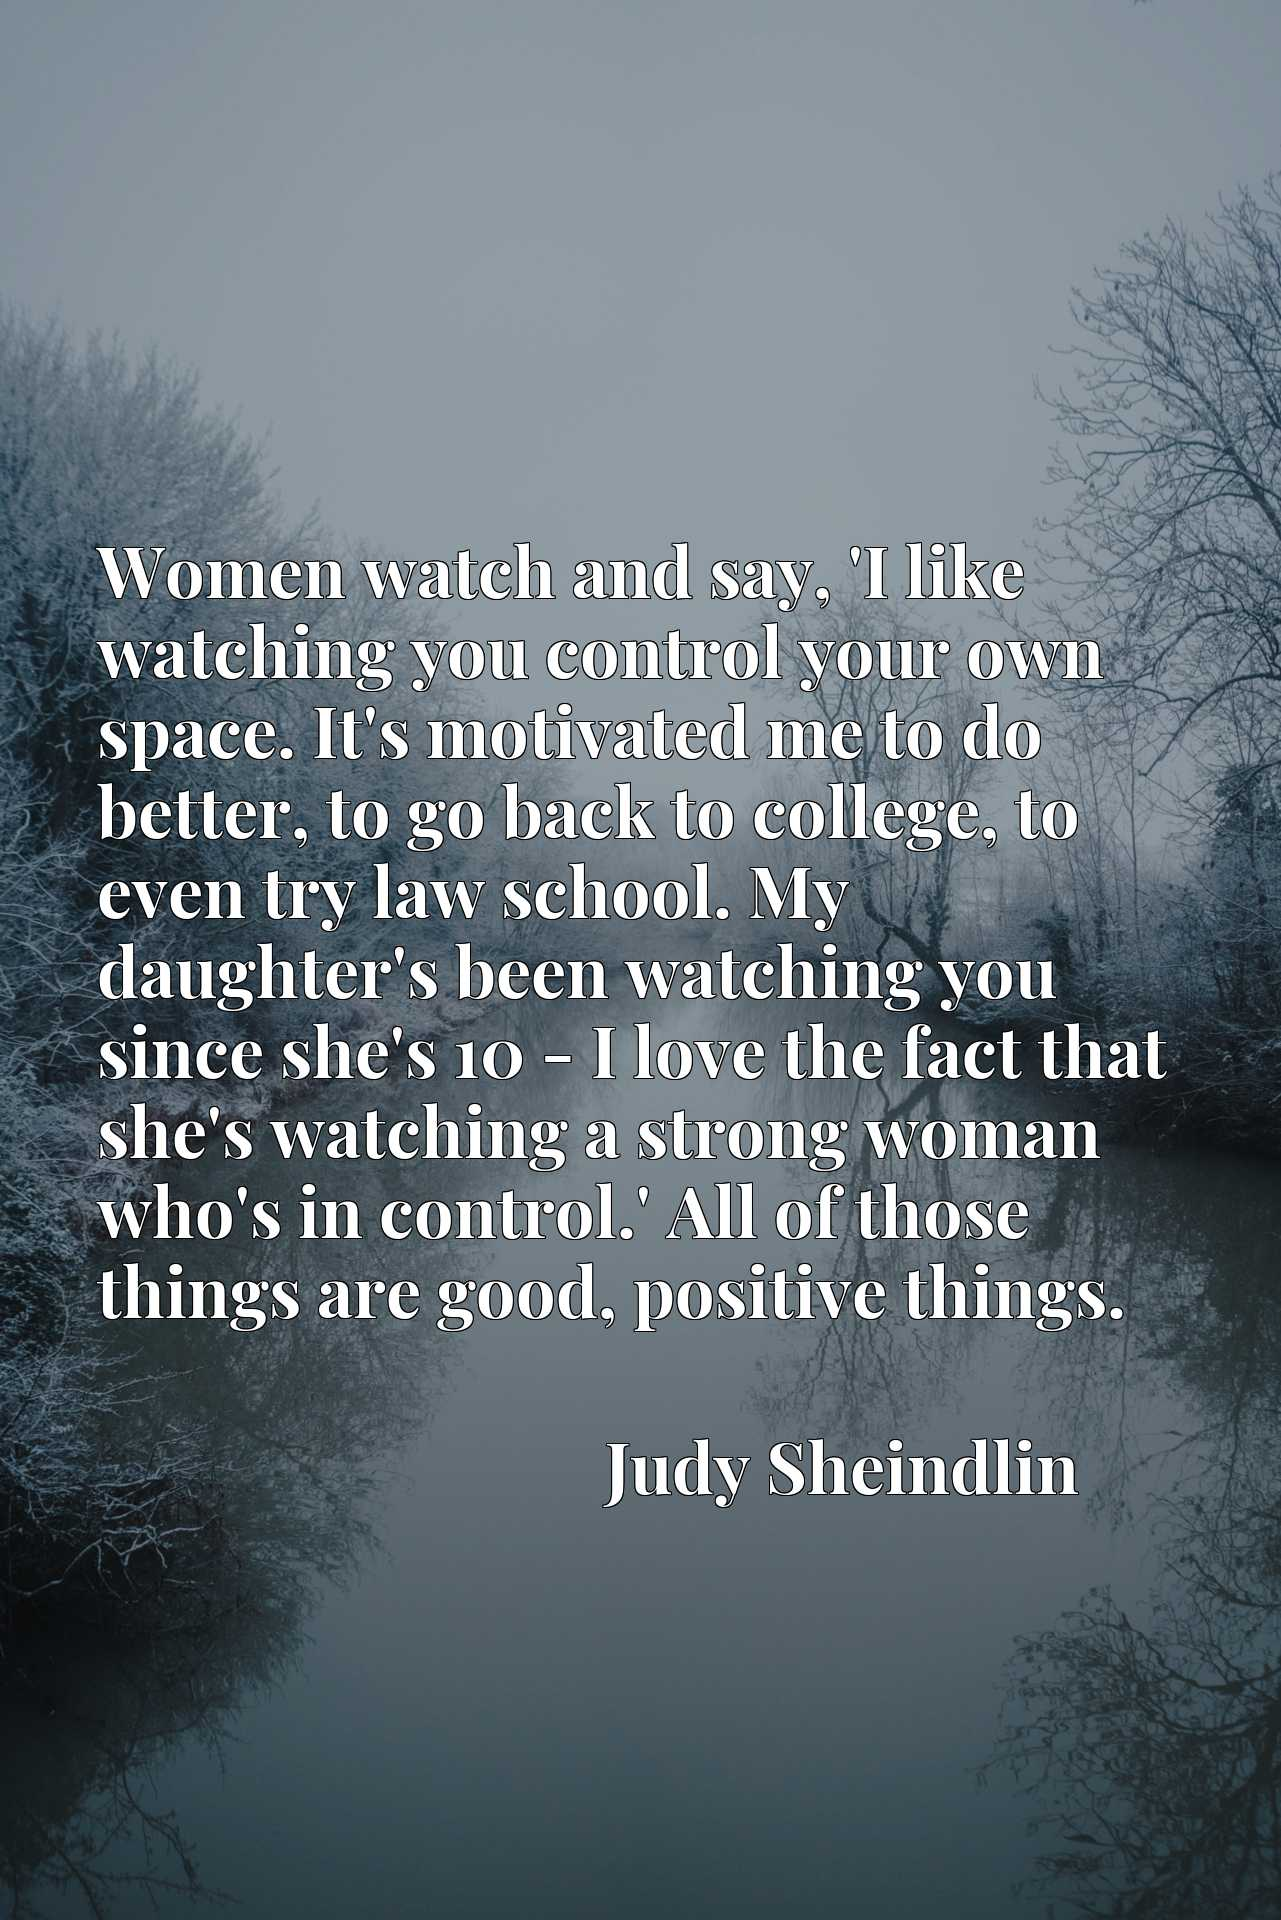 Women watch and say, 'I like watching you control your own space. It's motivated me to do better, to go back to college, to even try law school. My daughter's been watching you since she's 10 - I love the fact that she's watching a strong woman who's in control.' All of those things are good, positive things.